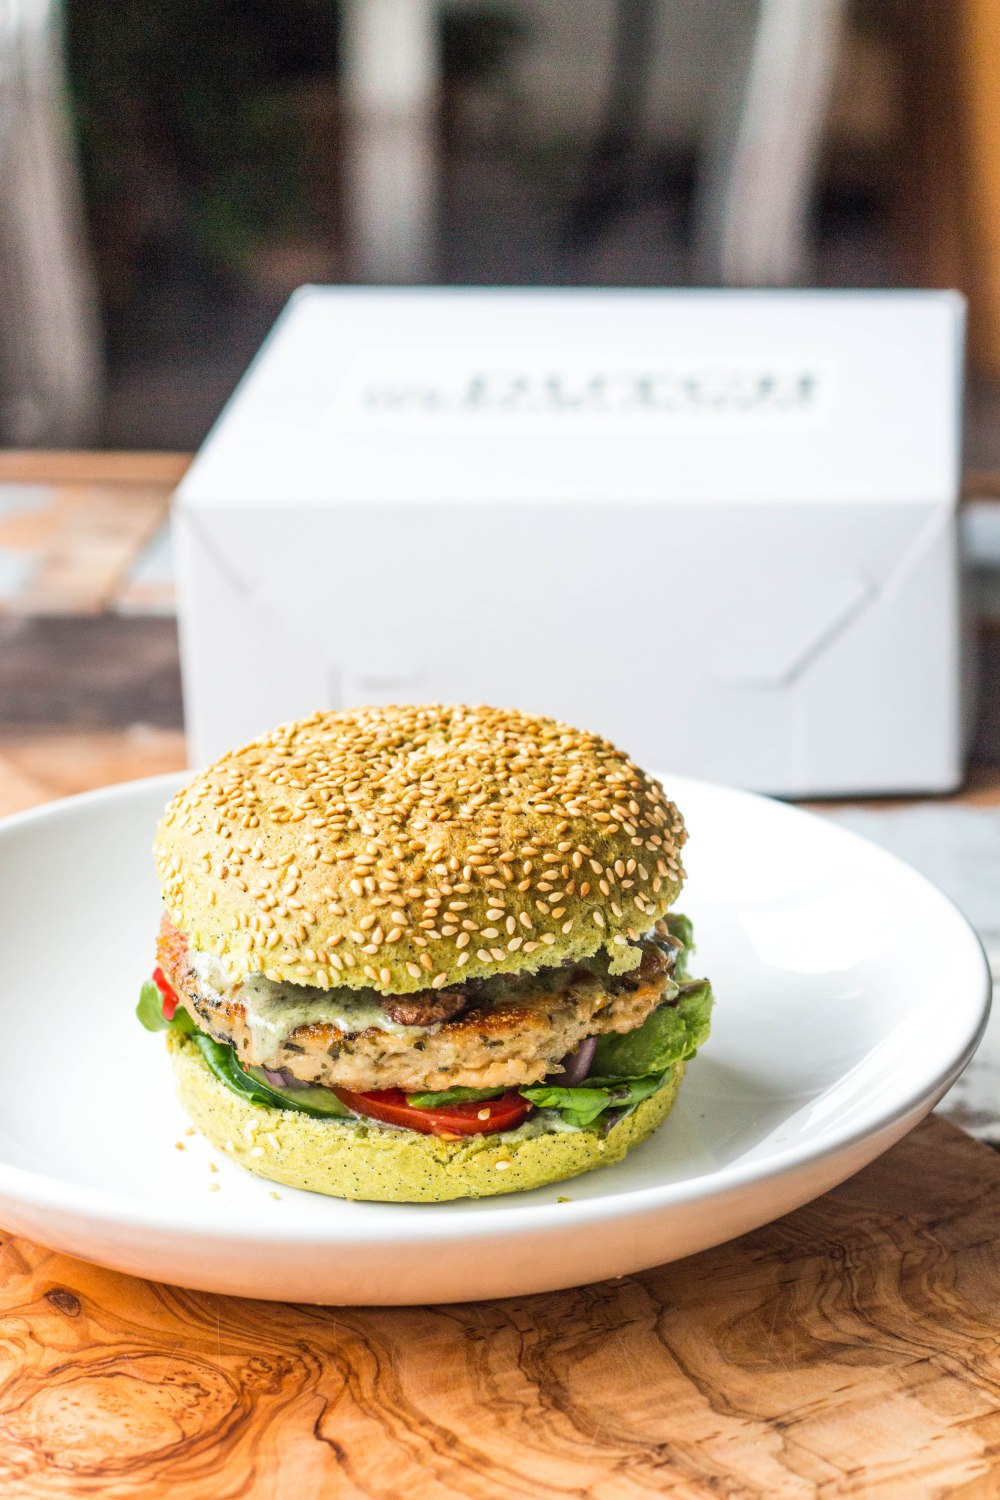 The Dutch Weed Burger // 100% Vegan Burger - Review by Rosalie Ruardy #healthy #vegan #burger